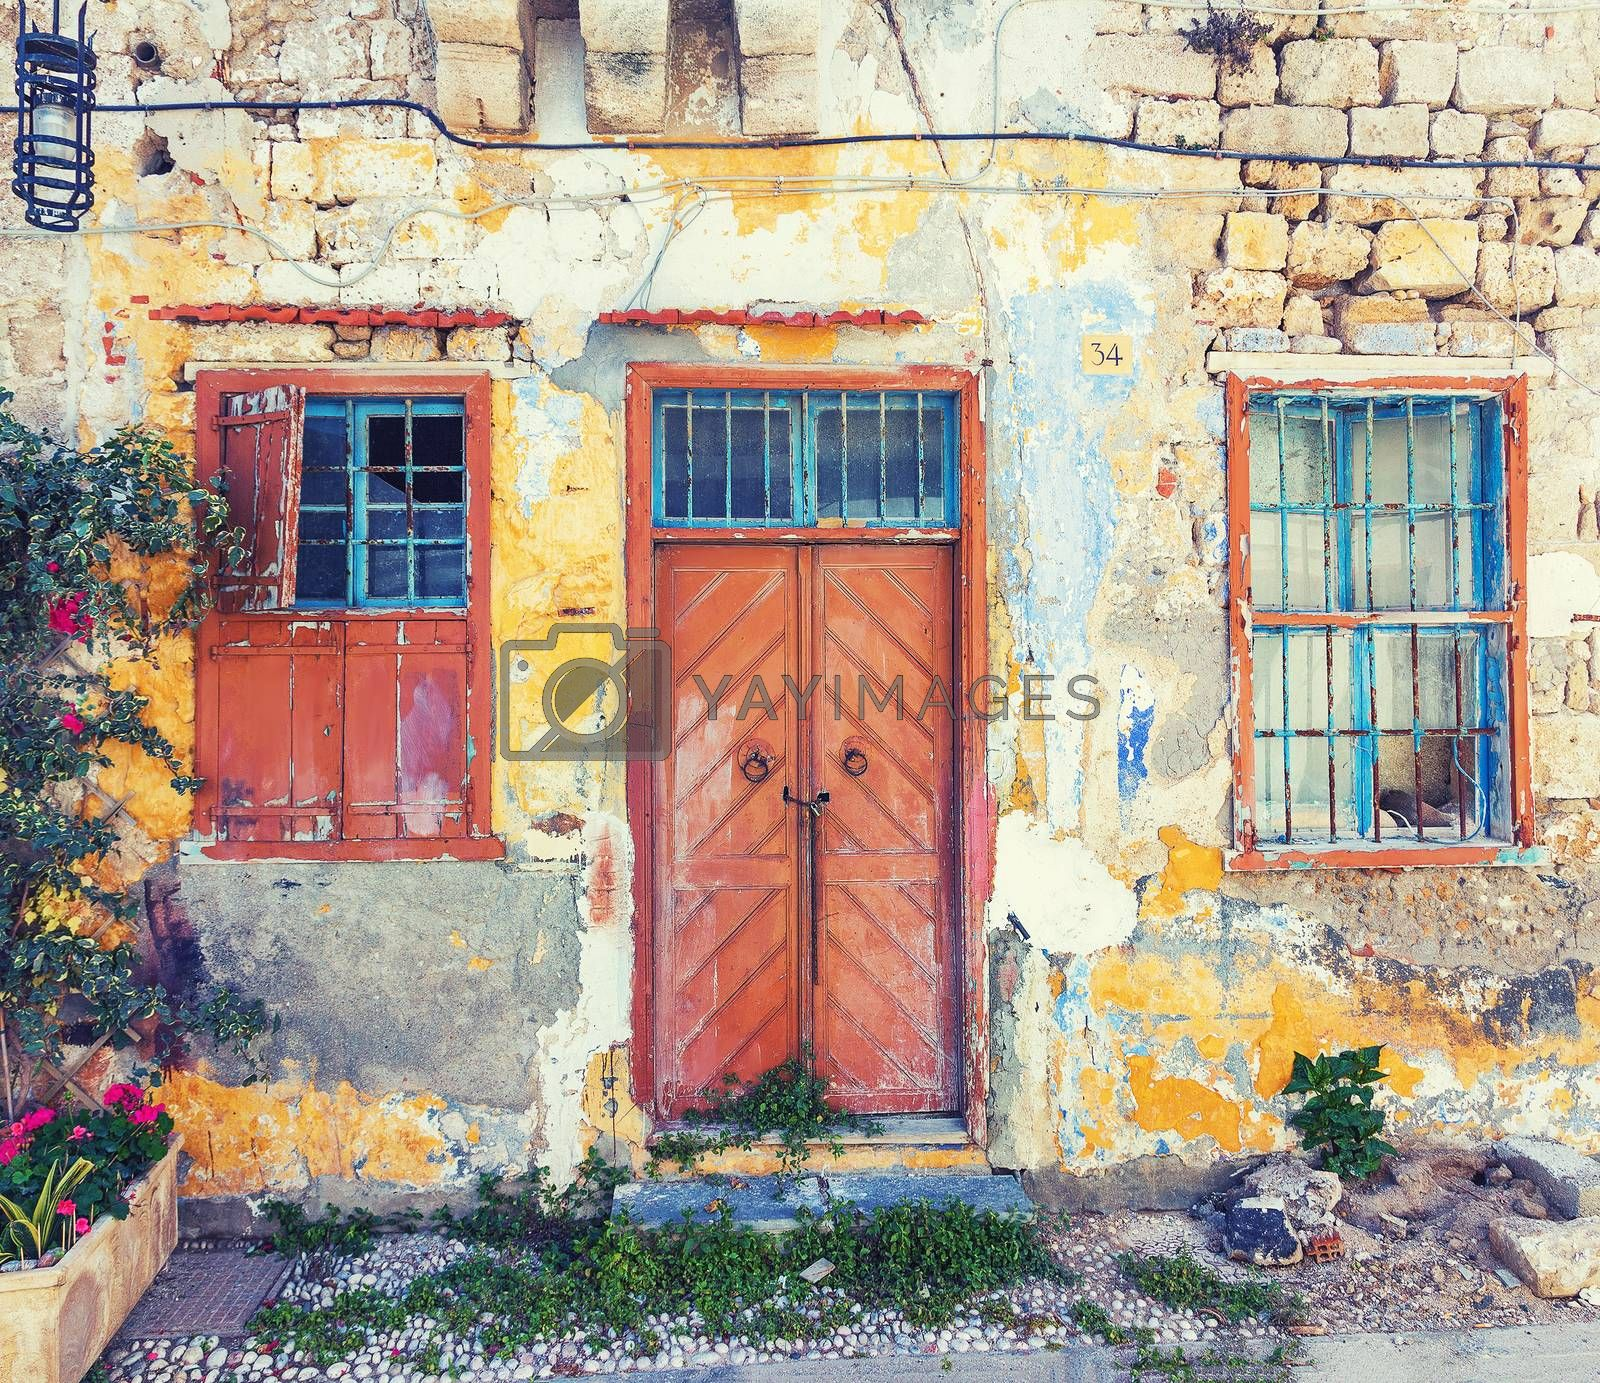 Photo of the old town  house, Rhodes island, Greece